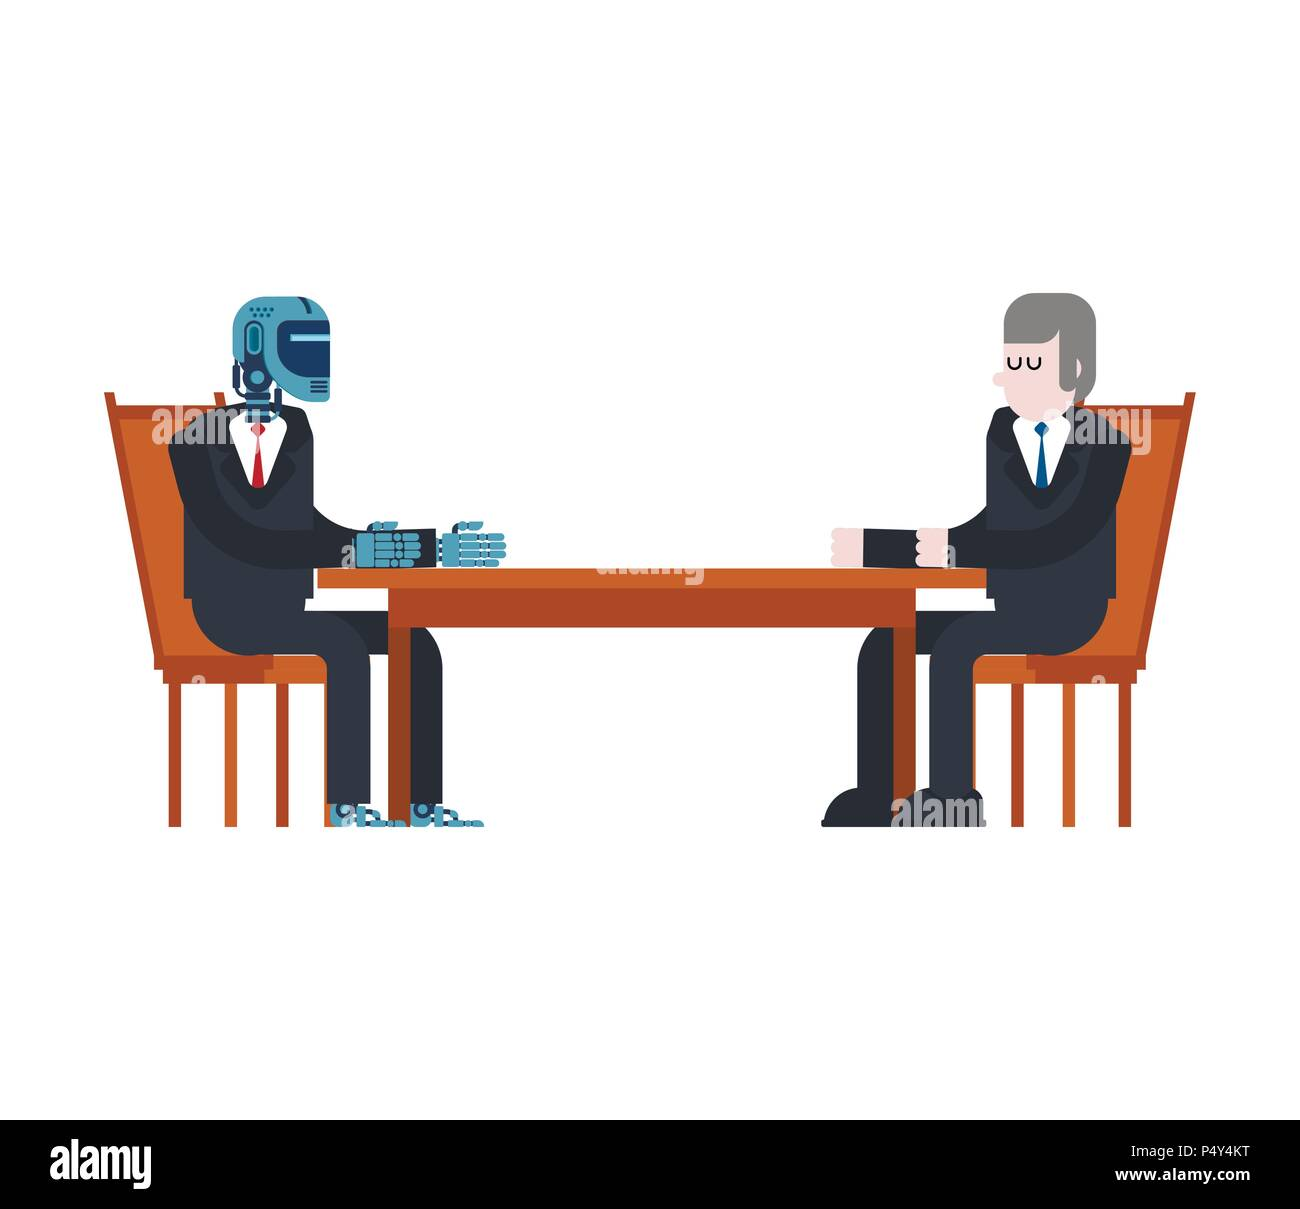 Cyborg and businessman talks. Robot and man at table. Artificial Intelligence. Vector illustration - Stock Vector